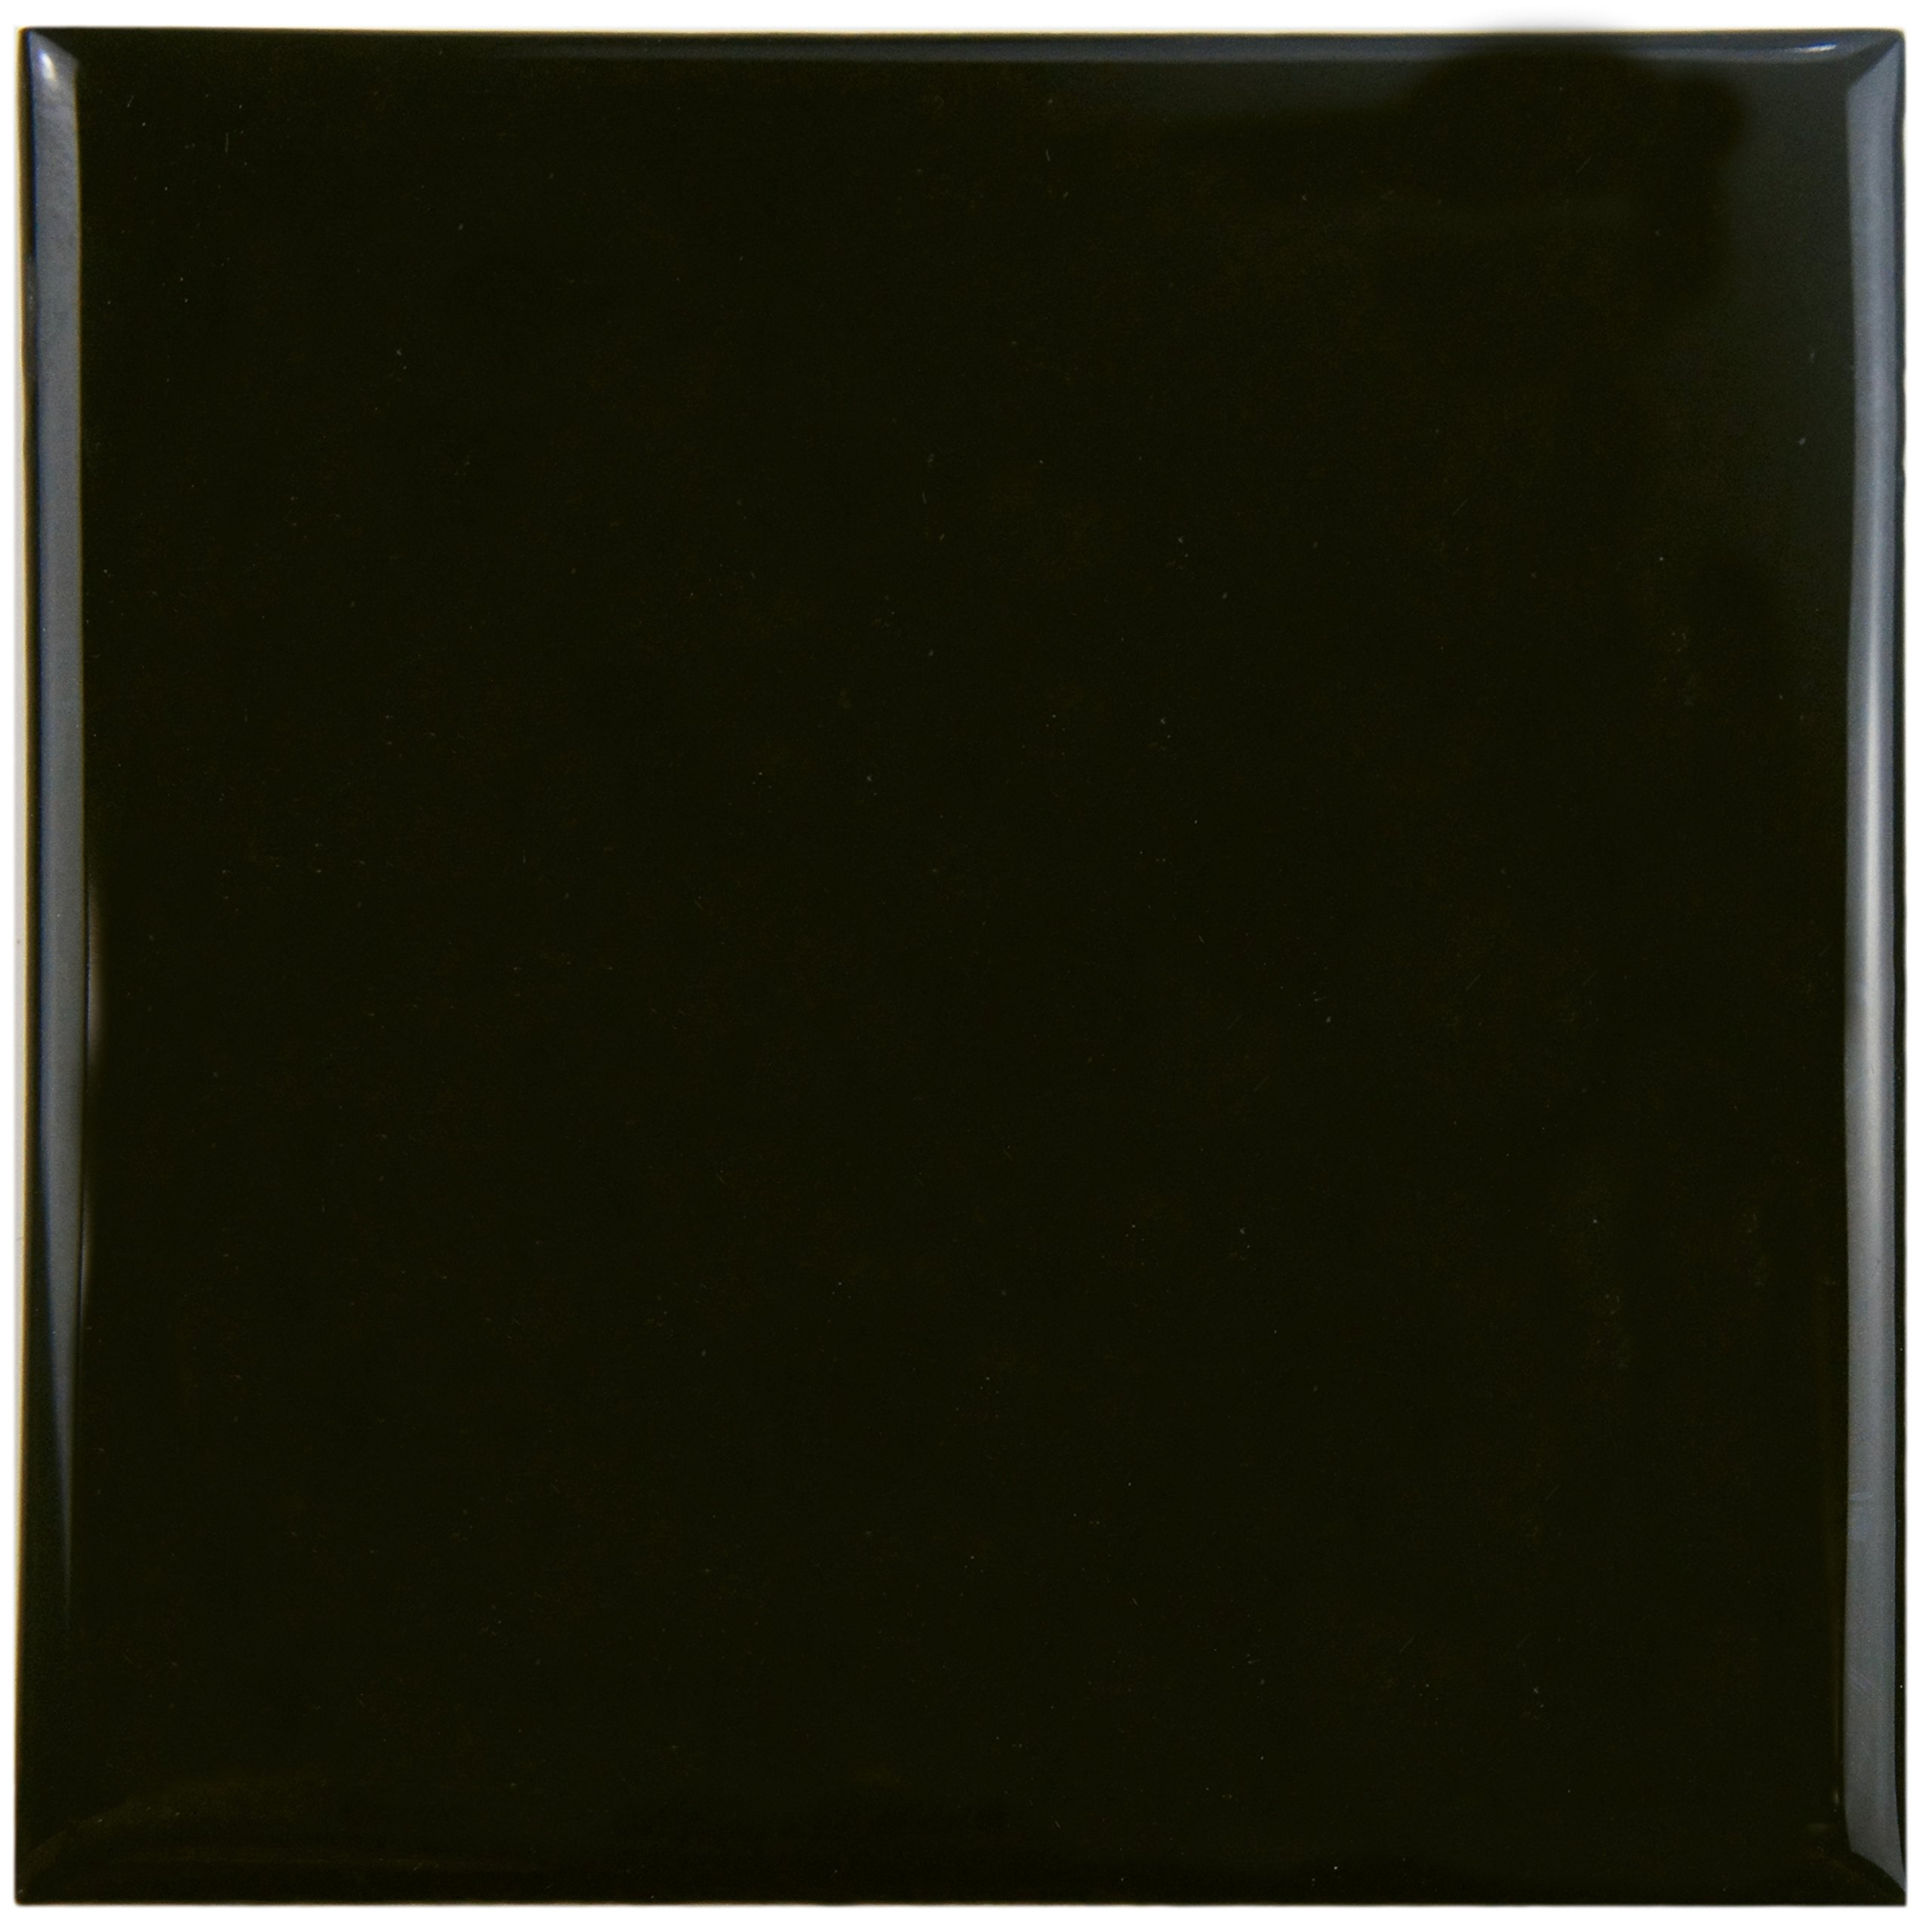 SomerTile WRC4TWBO Torsio Square Ceramic Wall Tile, 3.75'' x 3.75'', Olive Black by SOMERTILE